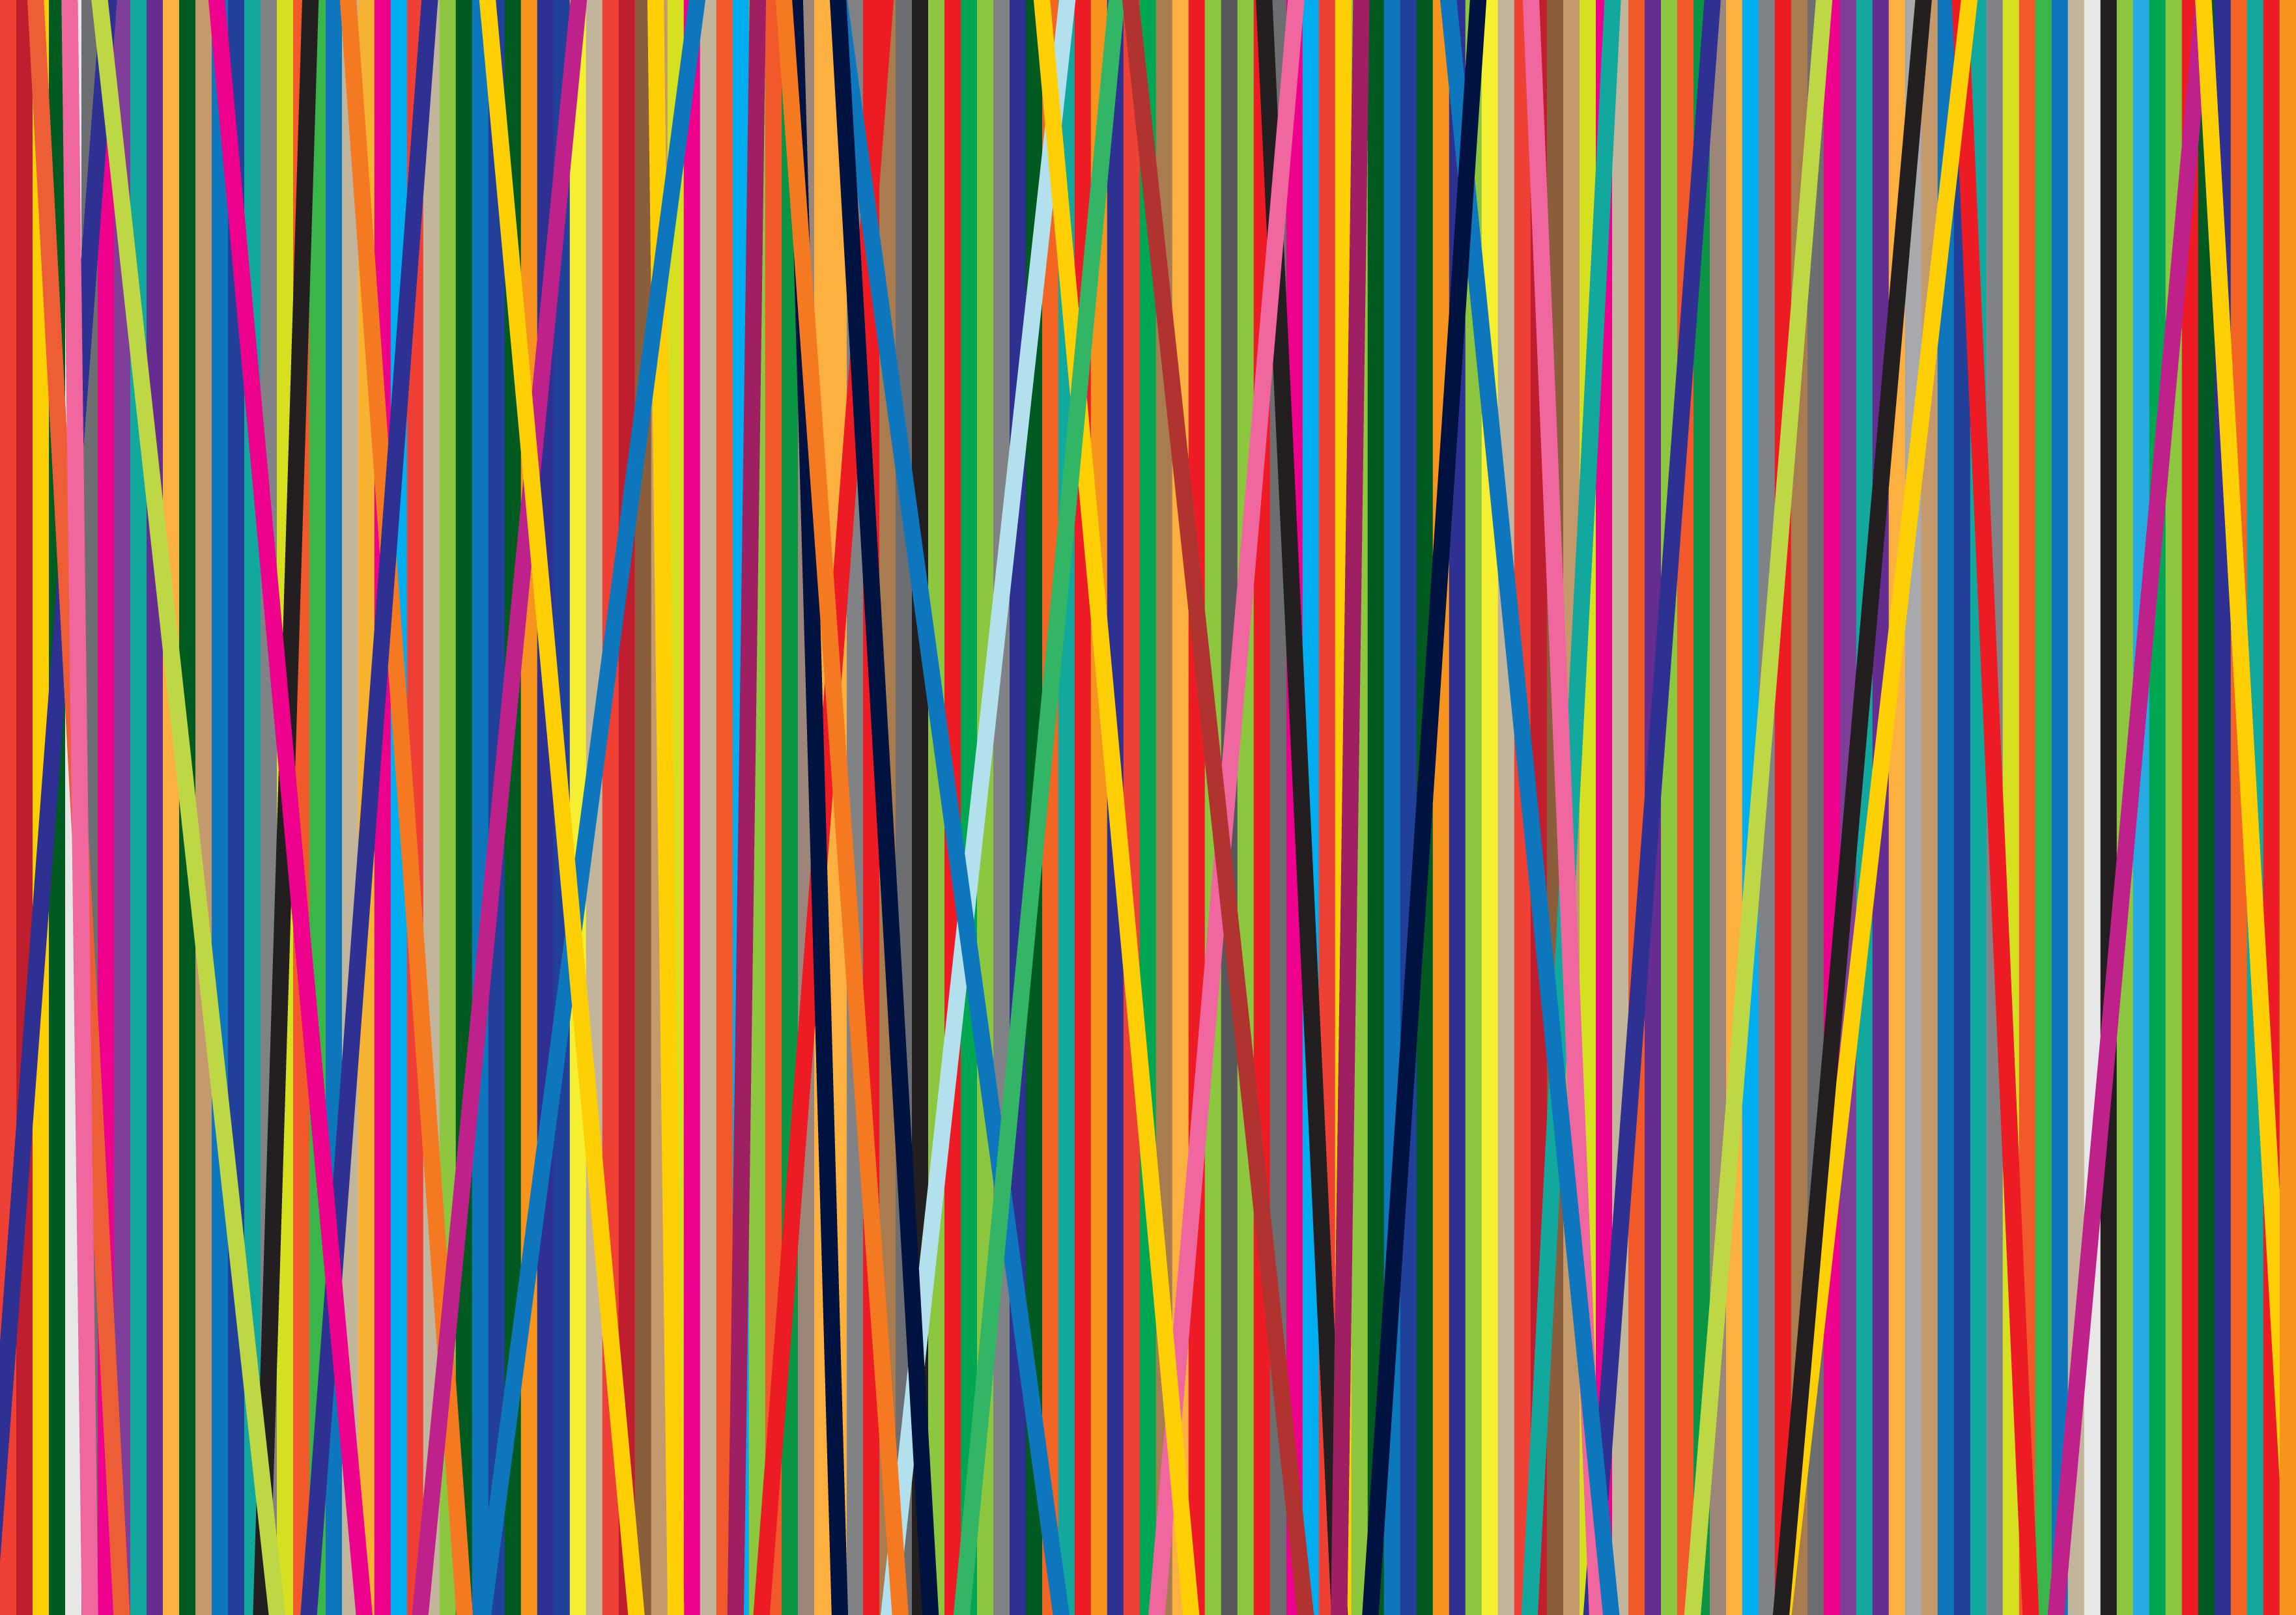 Wallpaper Colored lines